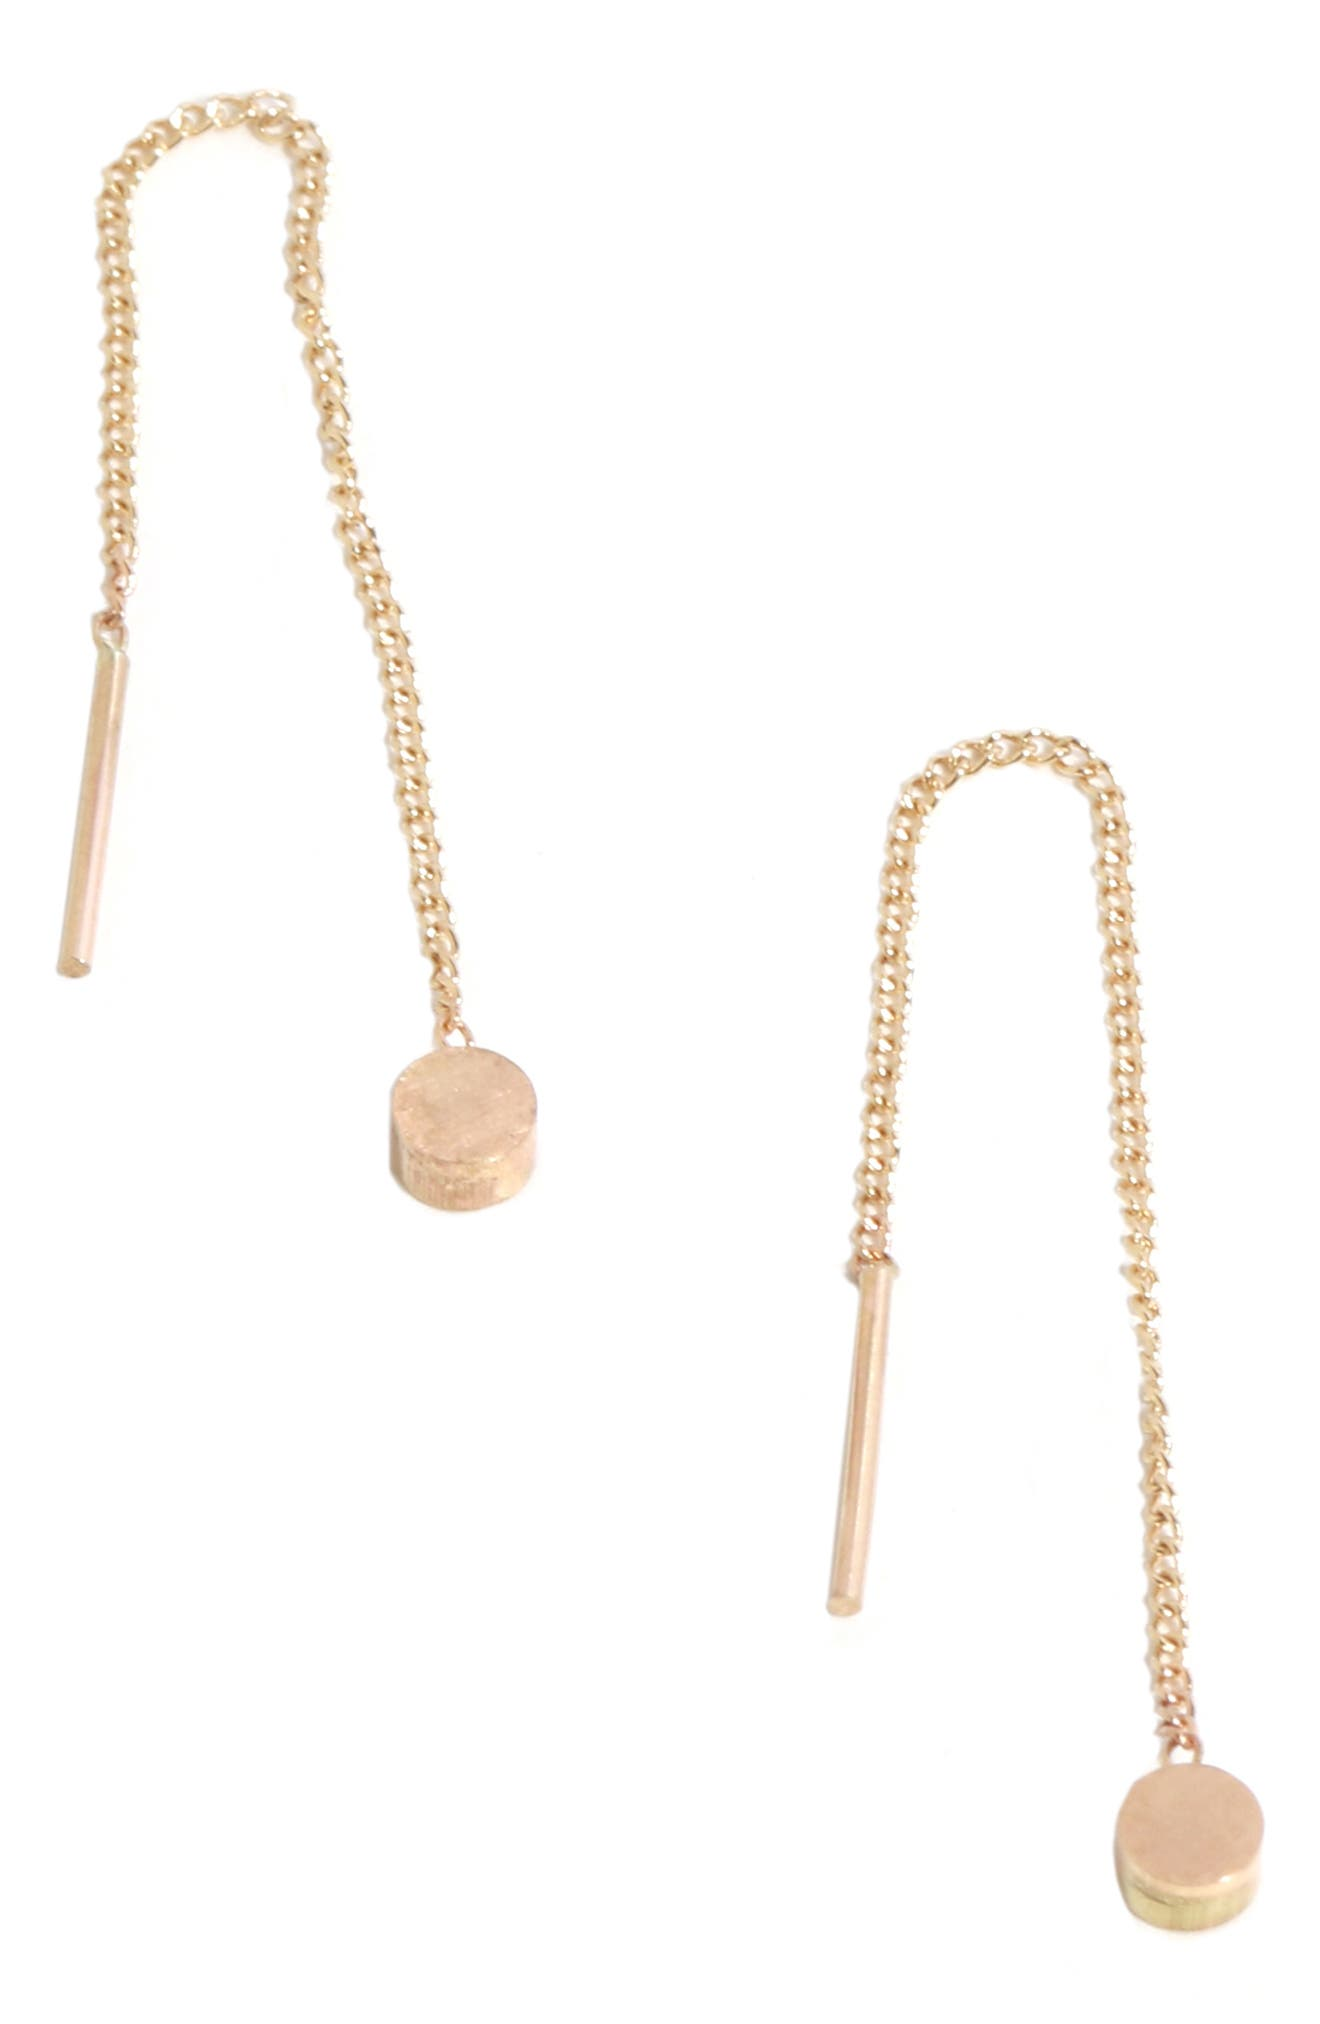 MELISSA JOY MANNING Chain Earrings in Yellow Gold